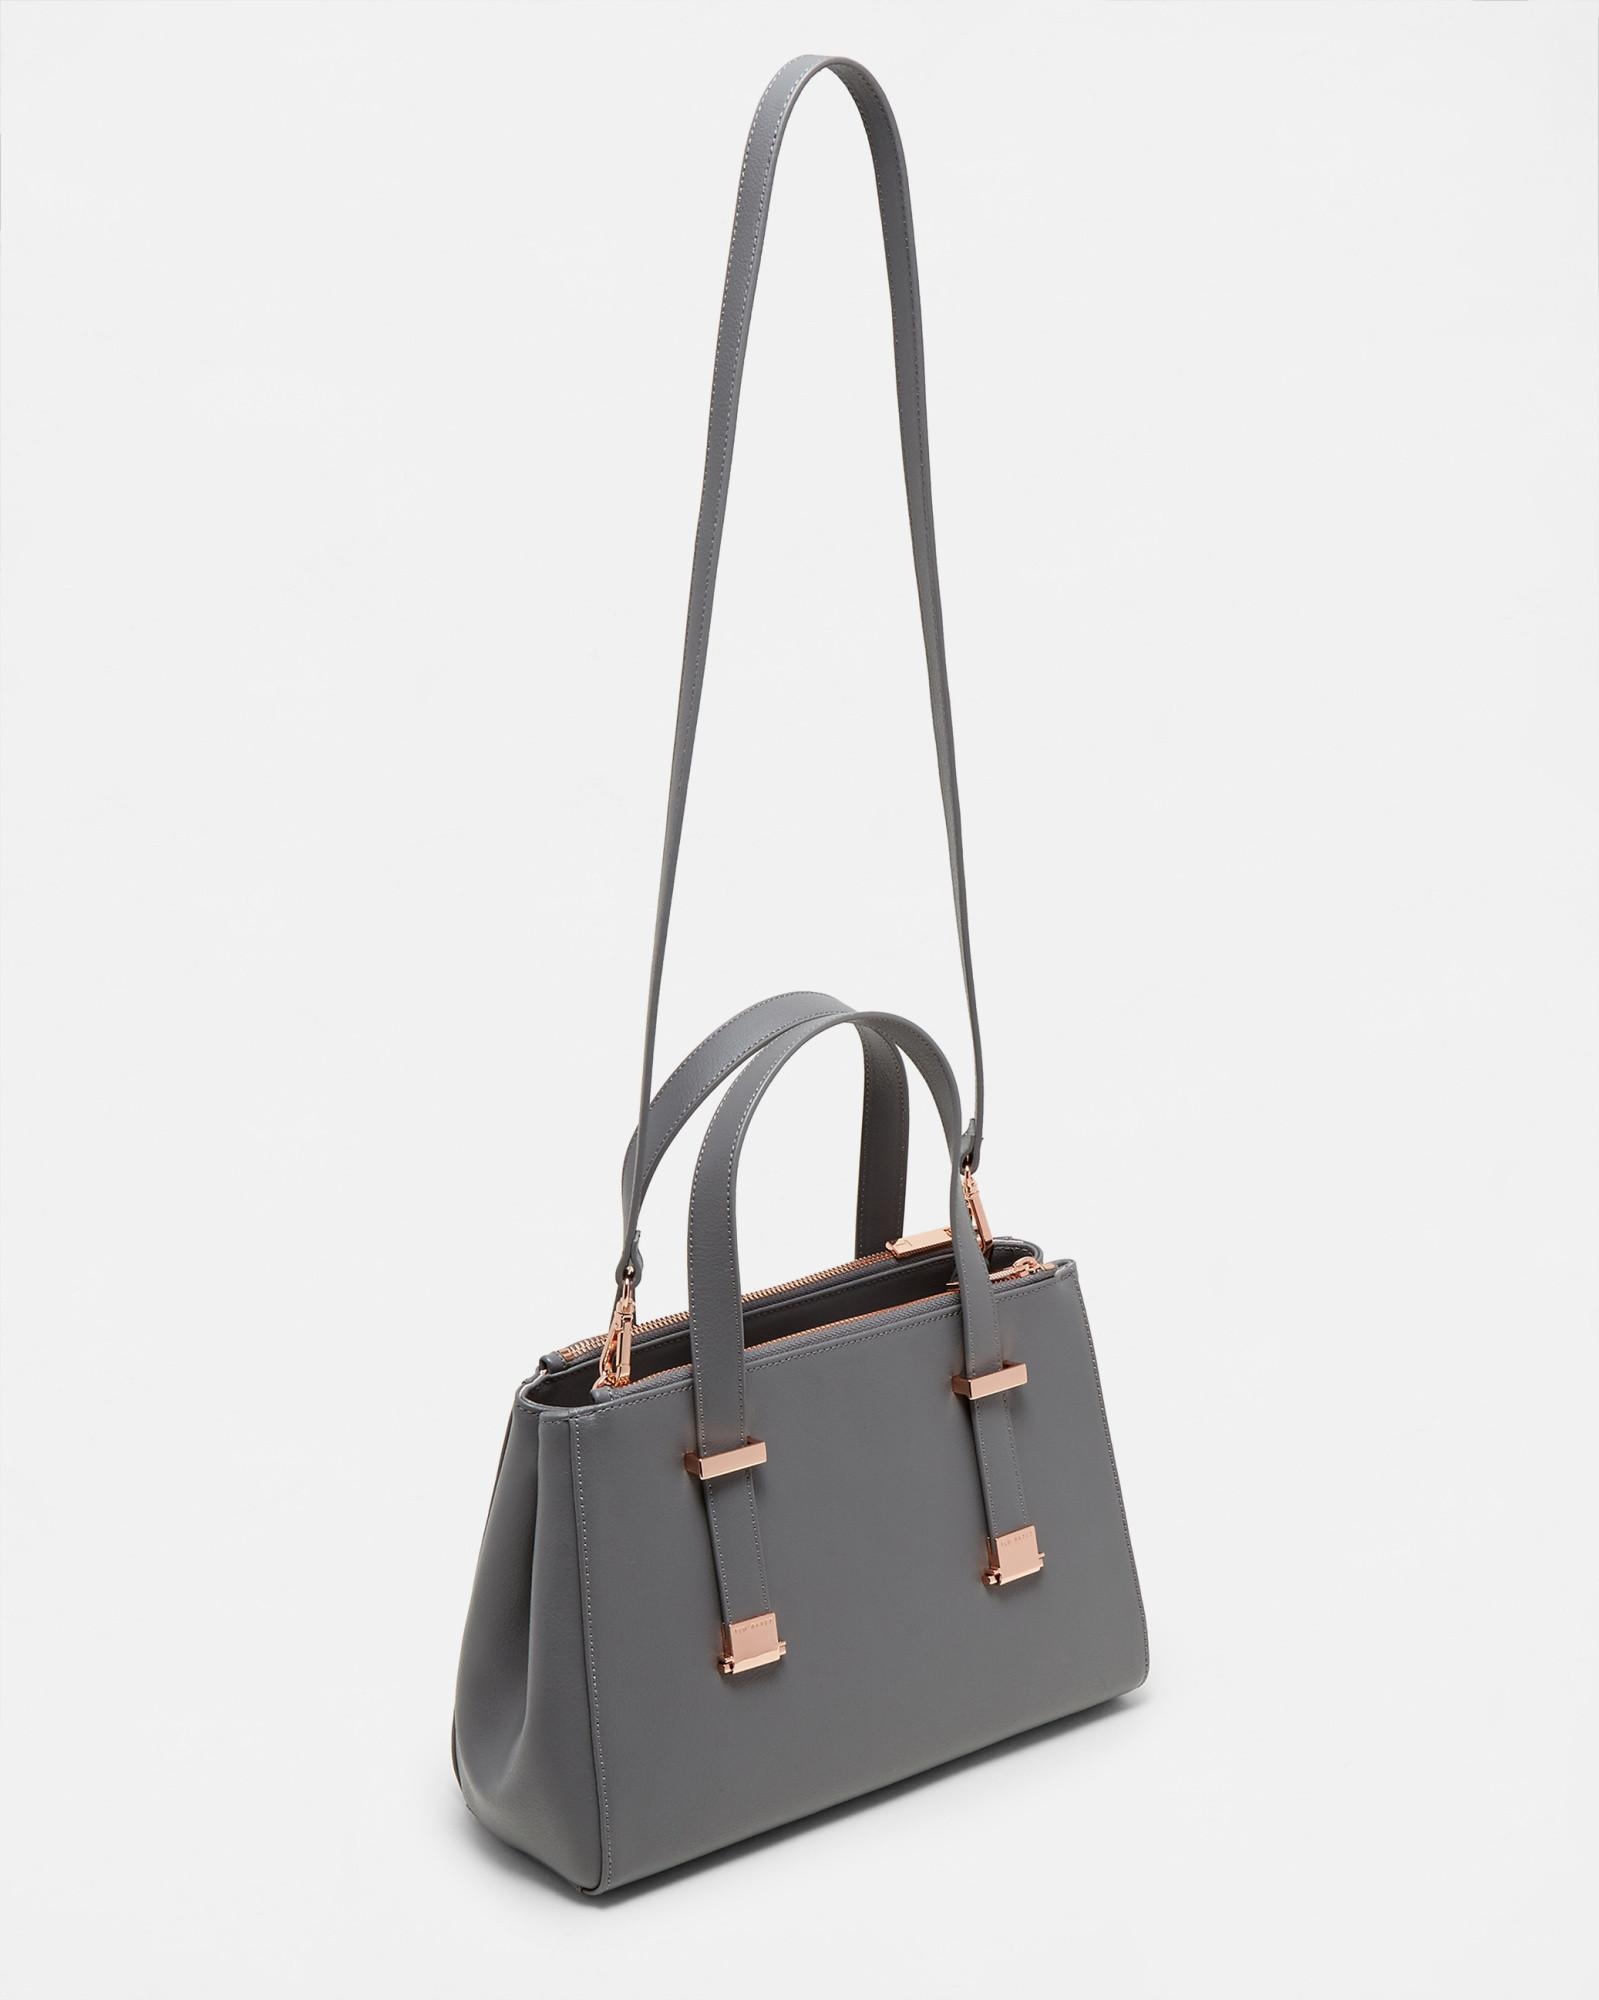 Small Leather Pebble Grain Tote Bag Ted Baker Footlocker Pictures For Sale Clearance How Much Outlet Free Shipping Authentic eIKJghx6X